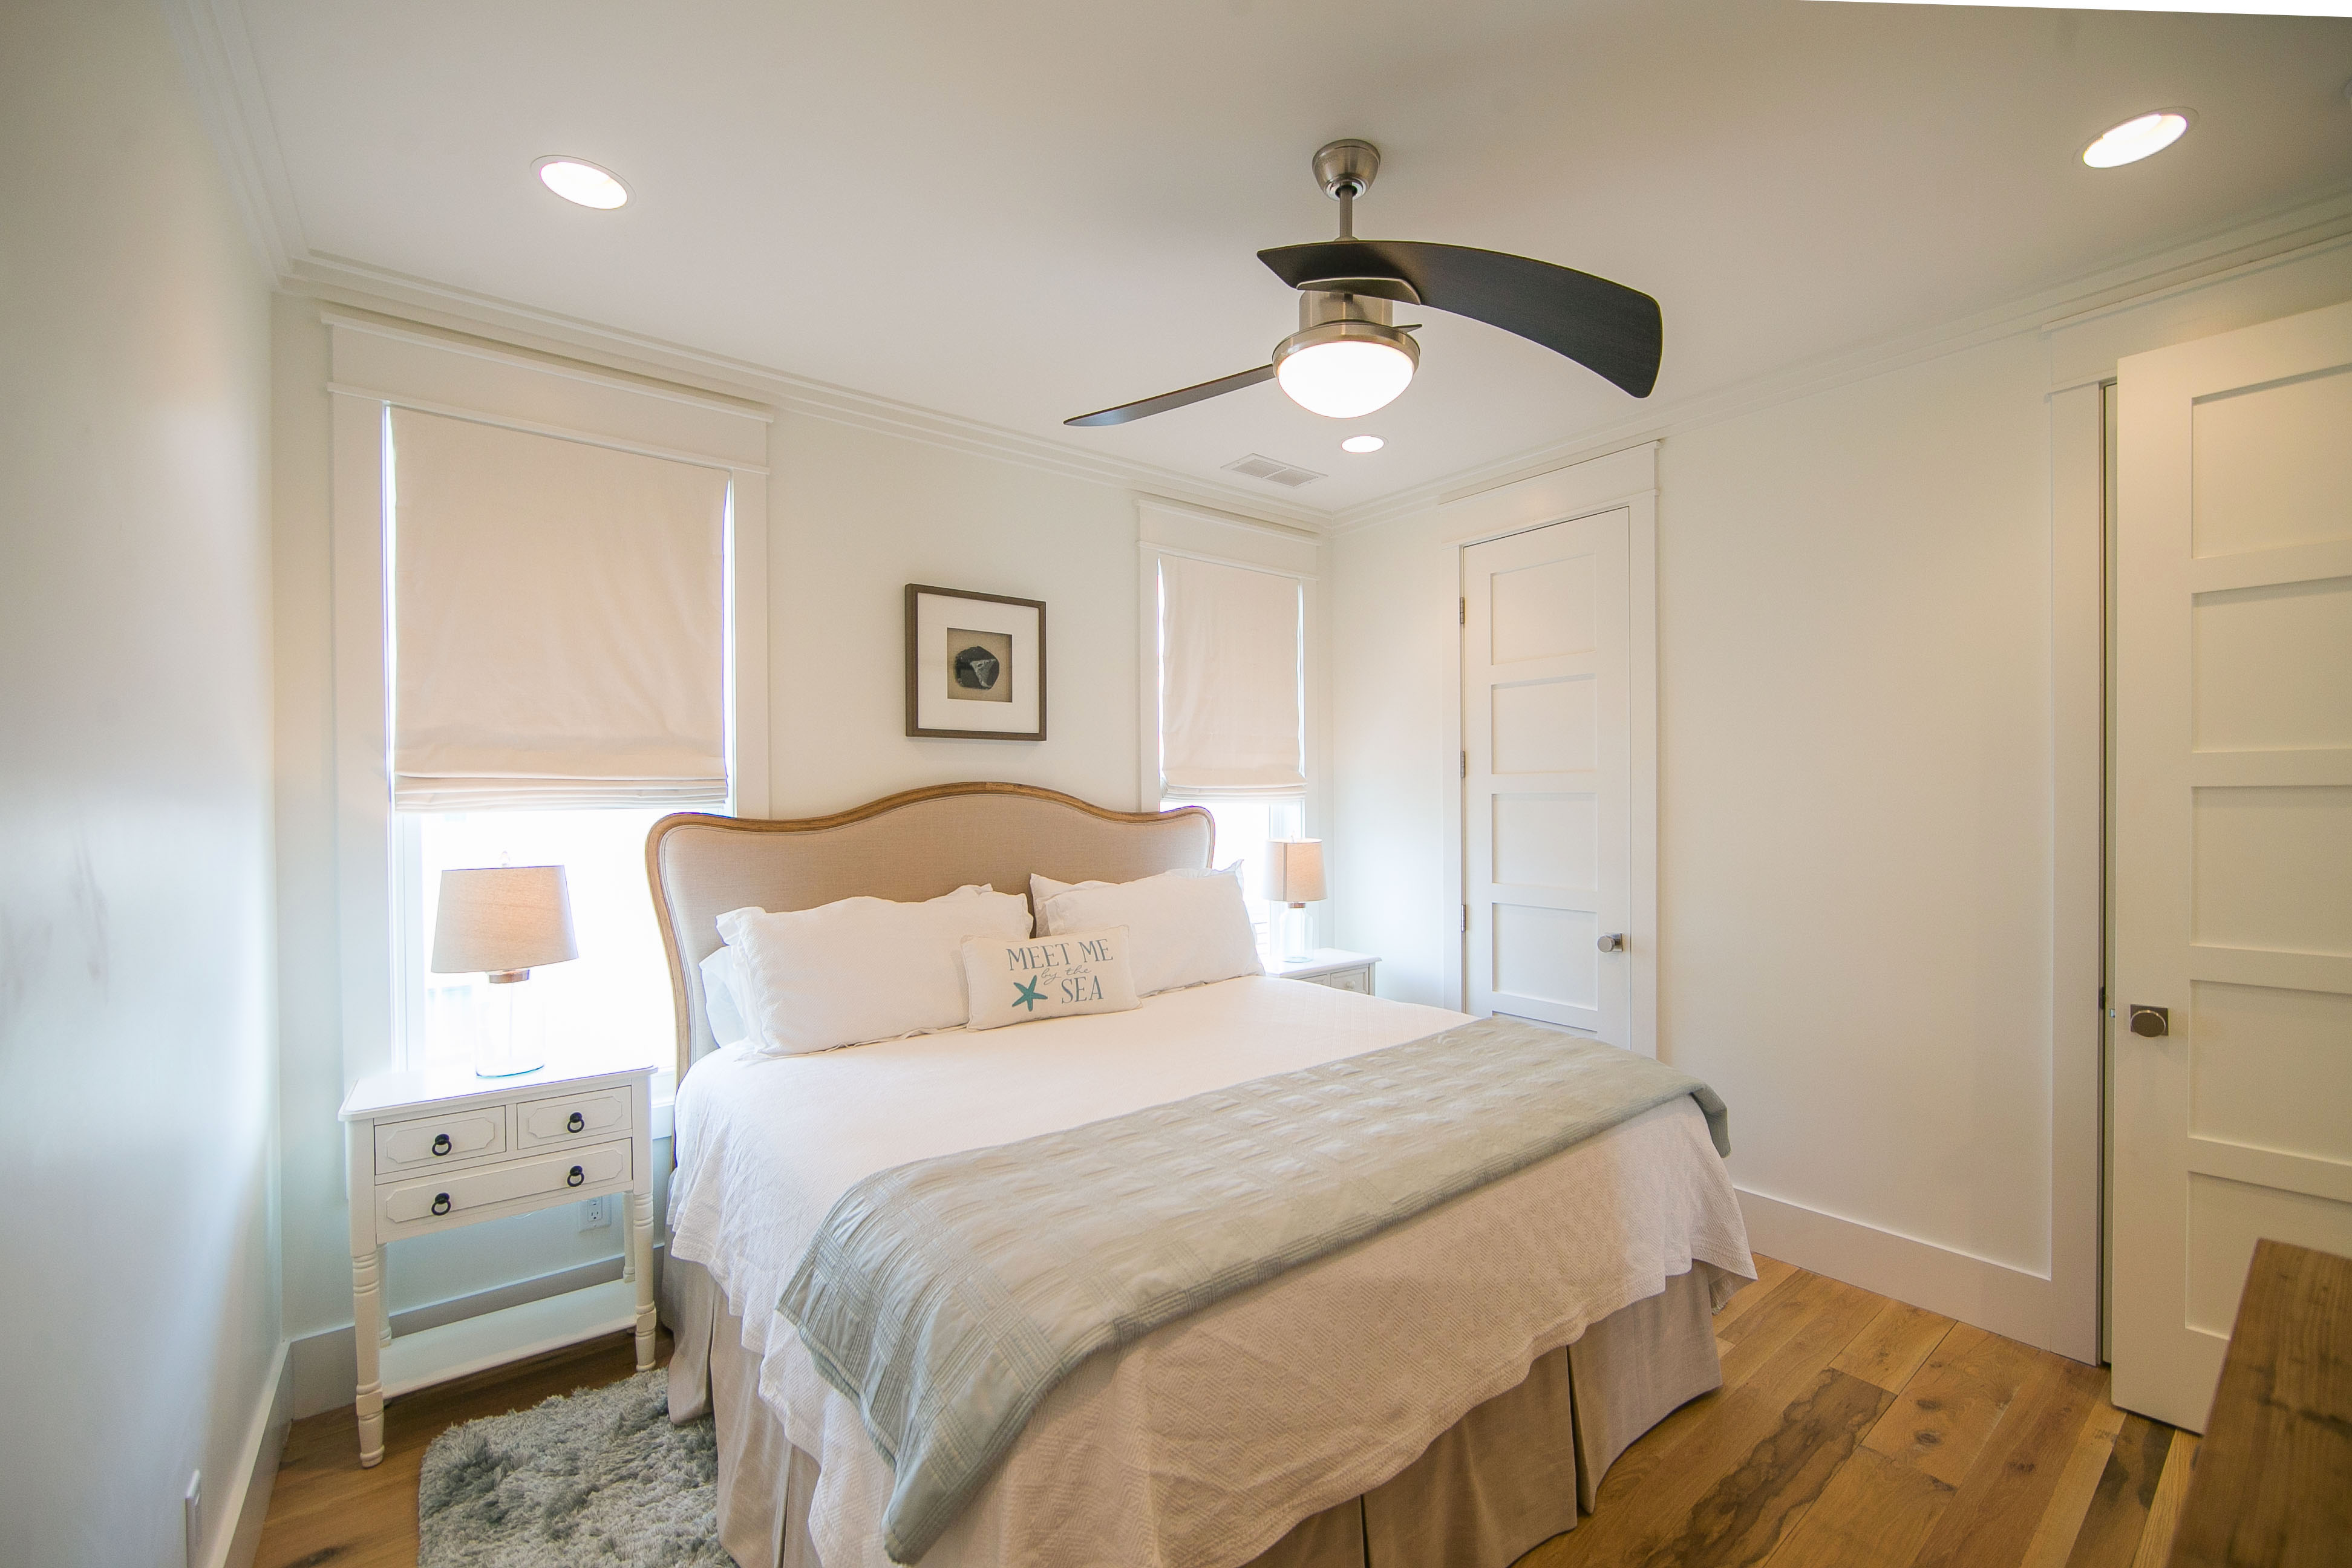 Guest bedroom 3 is located on the 2nd floor and continues the serene, blue and creamy white color palette.  It has a comfortable a king sized bed and ensuite bath.